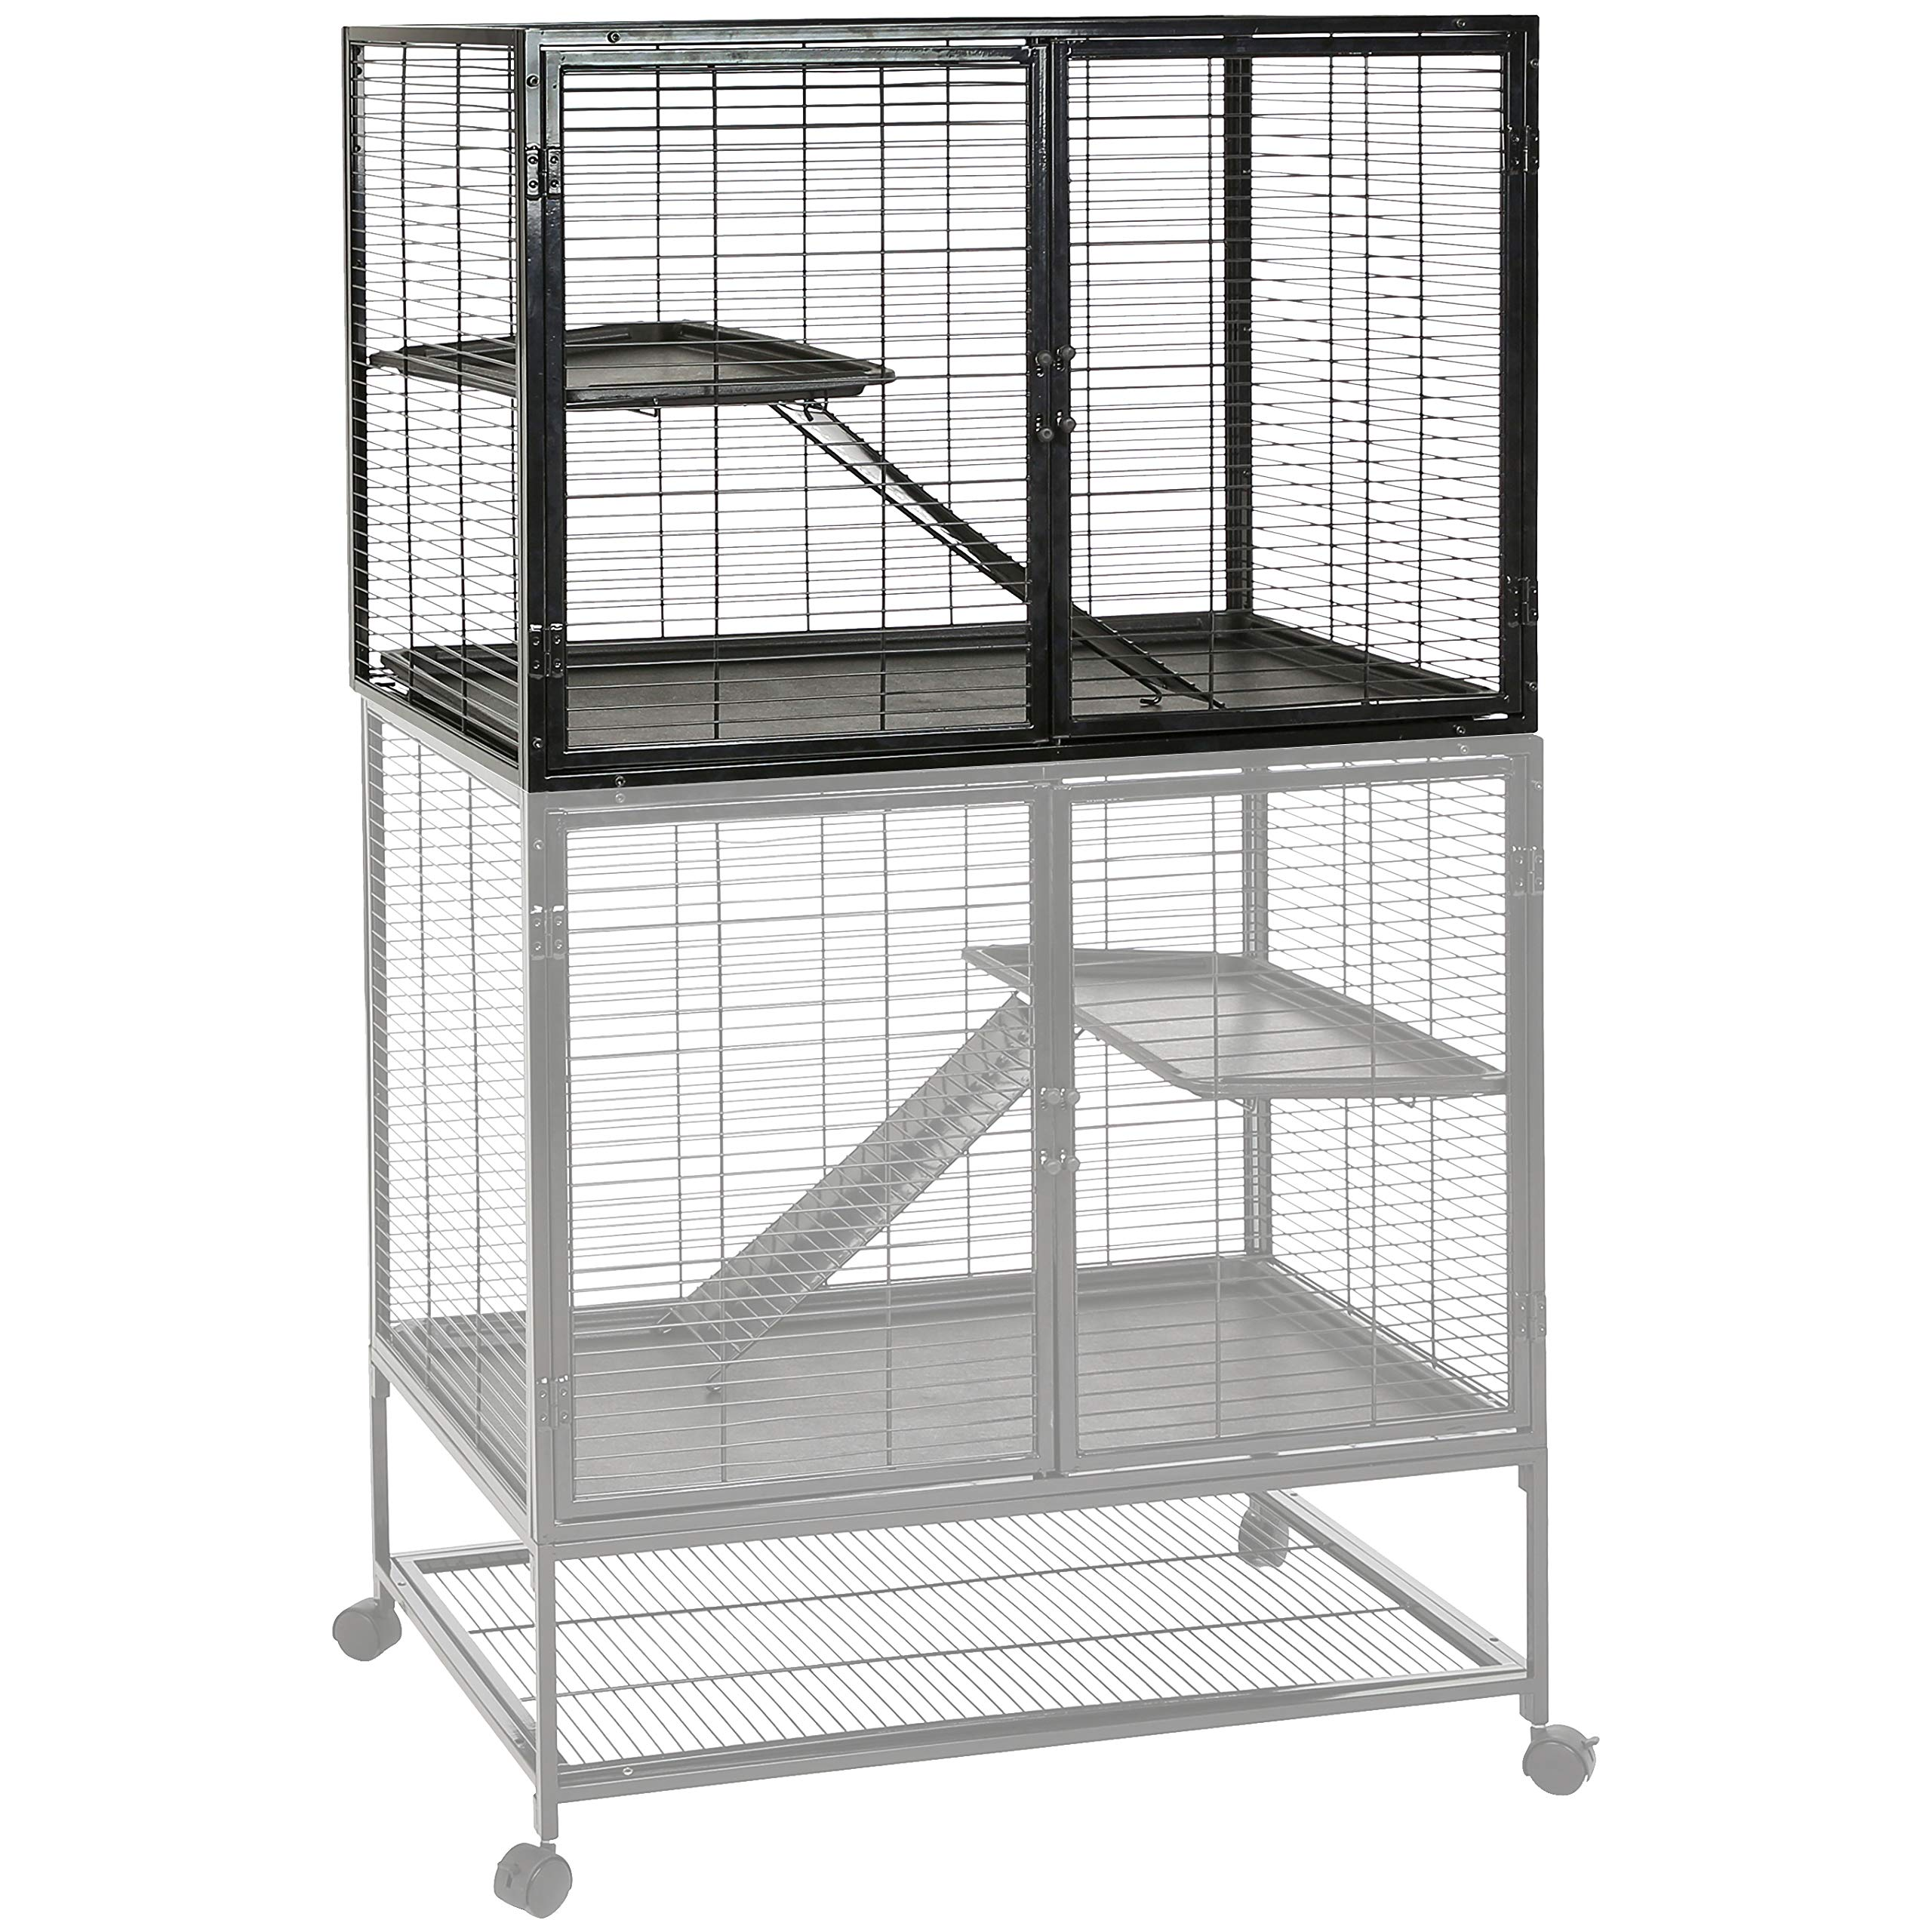 AmazonBasics Small Animal Metal Pet Cage Add On - 36 x 25 x 23 Inches